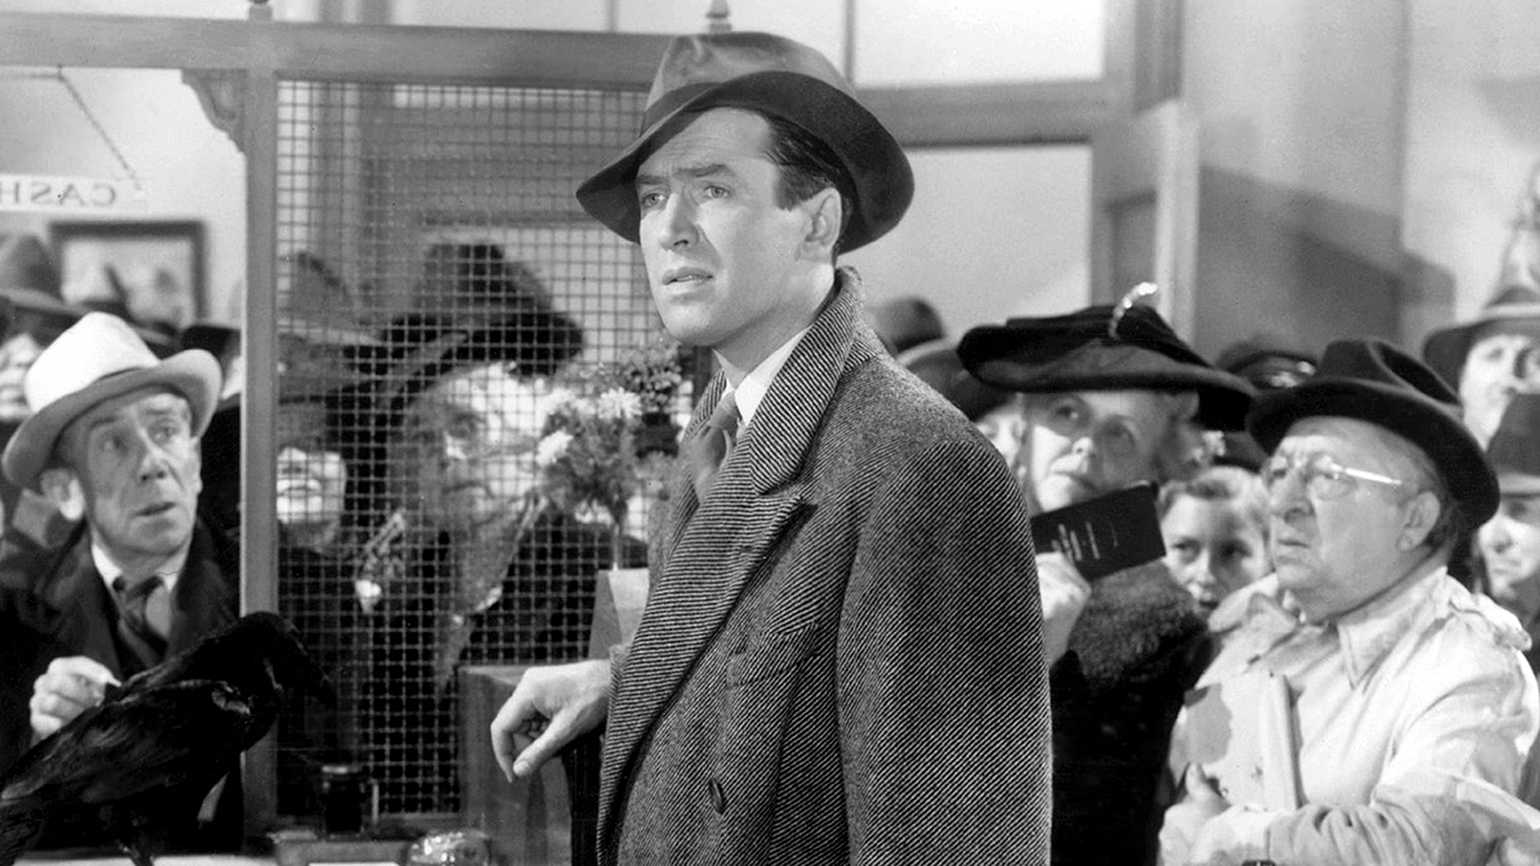 James Stewart in a scene from It's a Wonderful Life